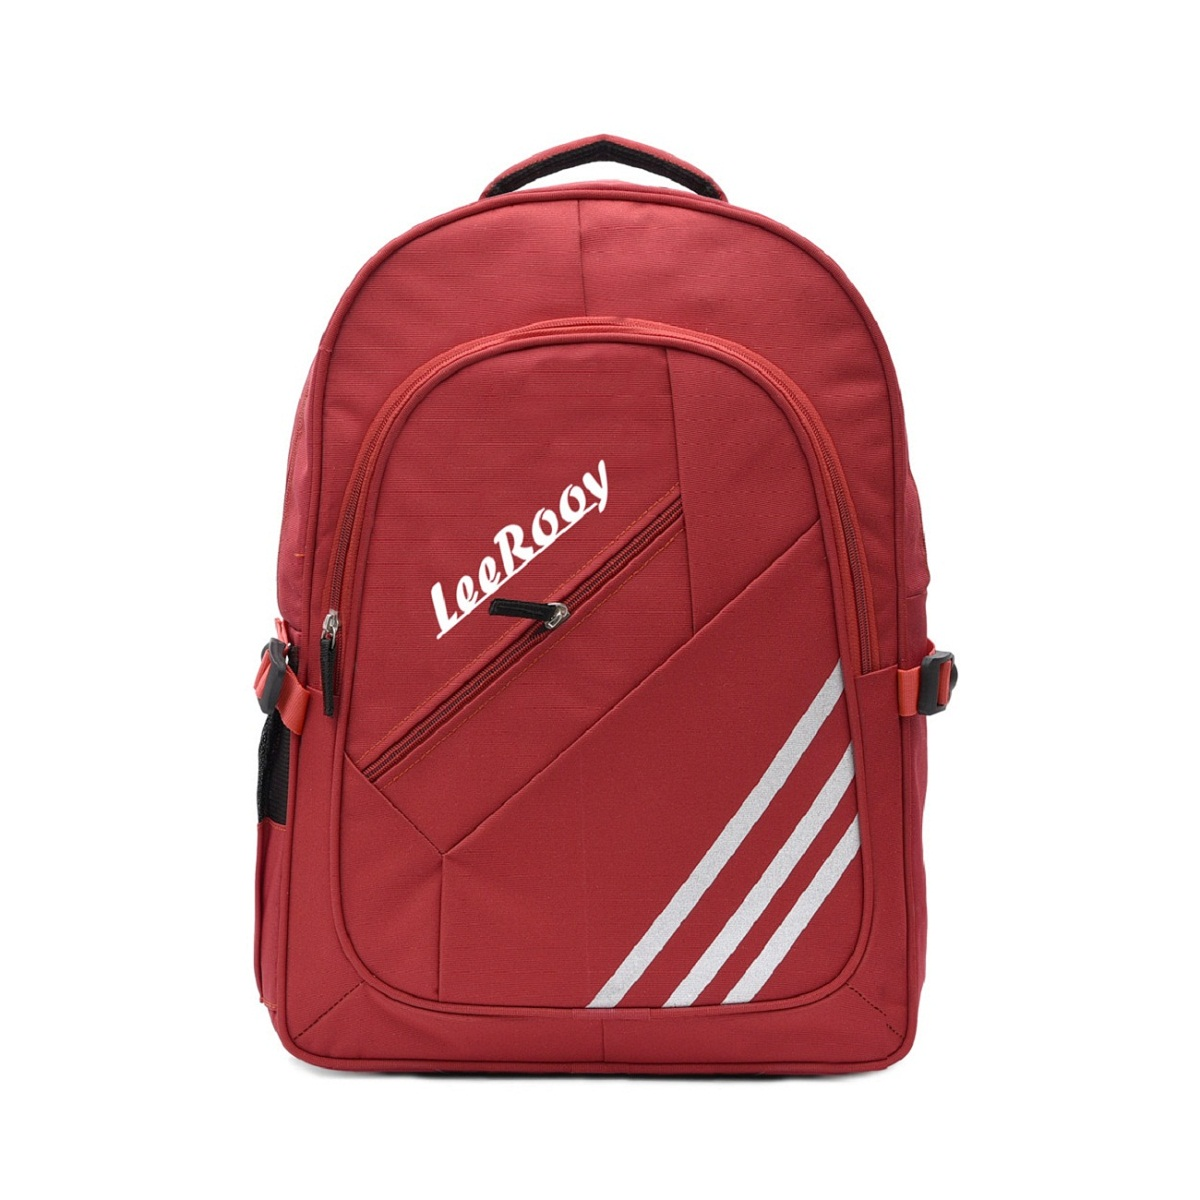 LeeRooy Canvas Laptop Other  Laptop Bags   Backpack   red Laptop Bag Backpack School Bag Laptop Bag Shoulder Bag